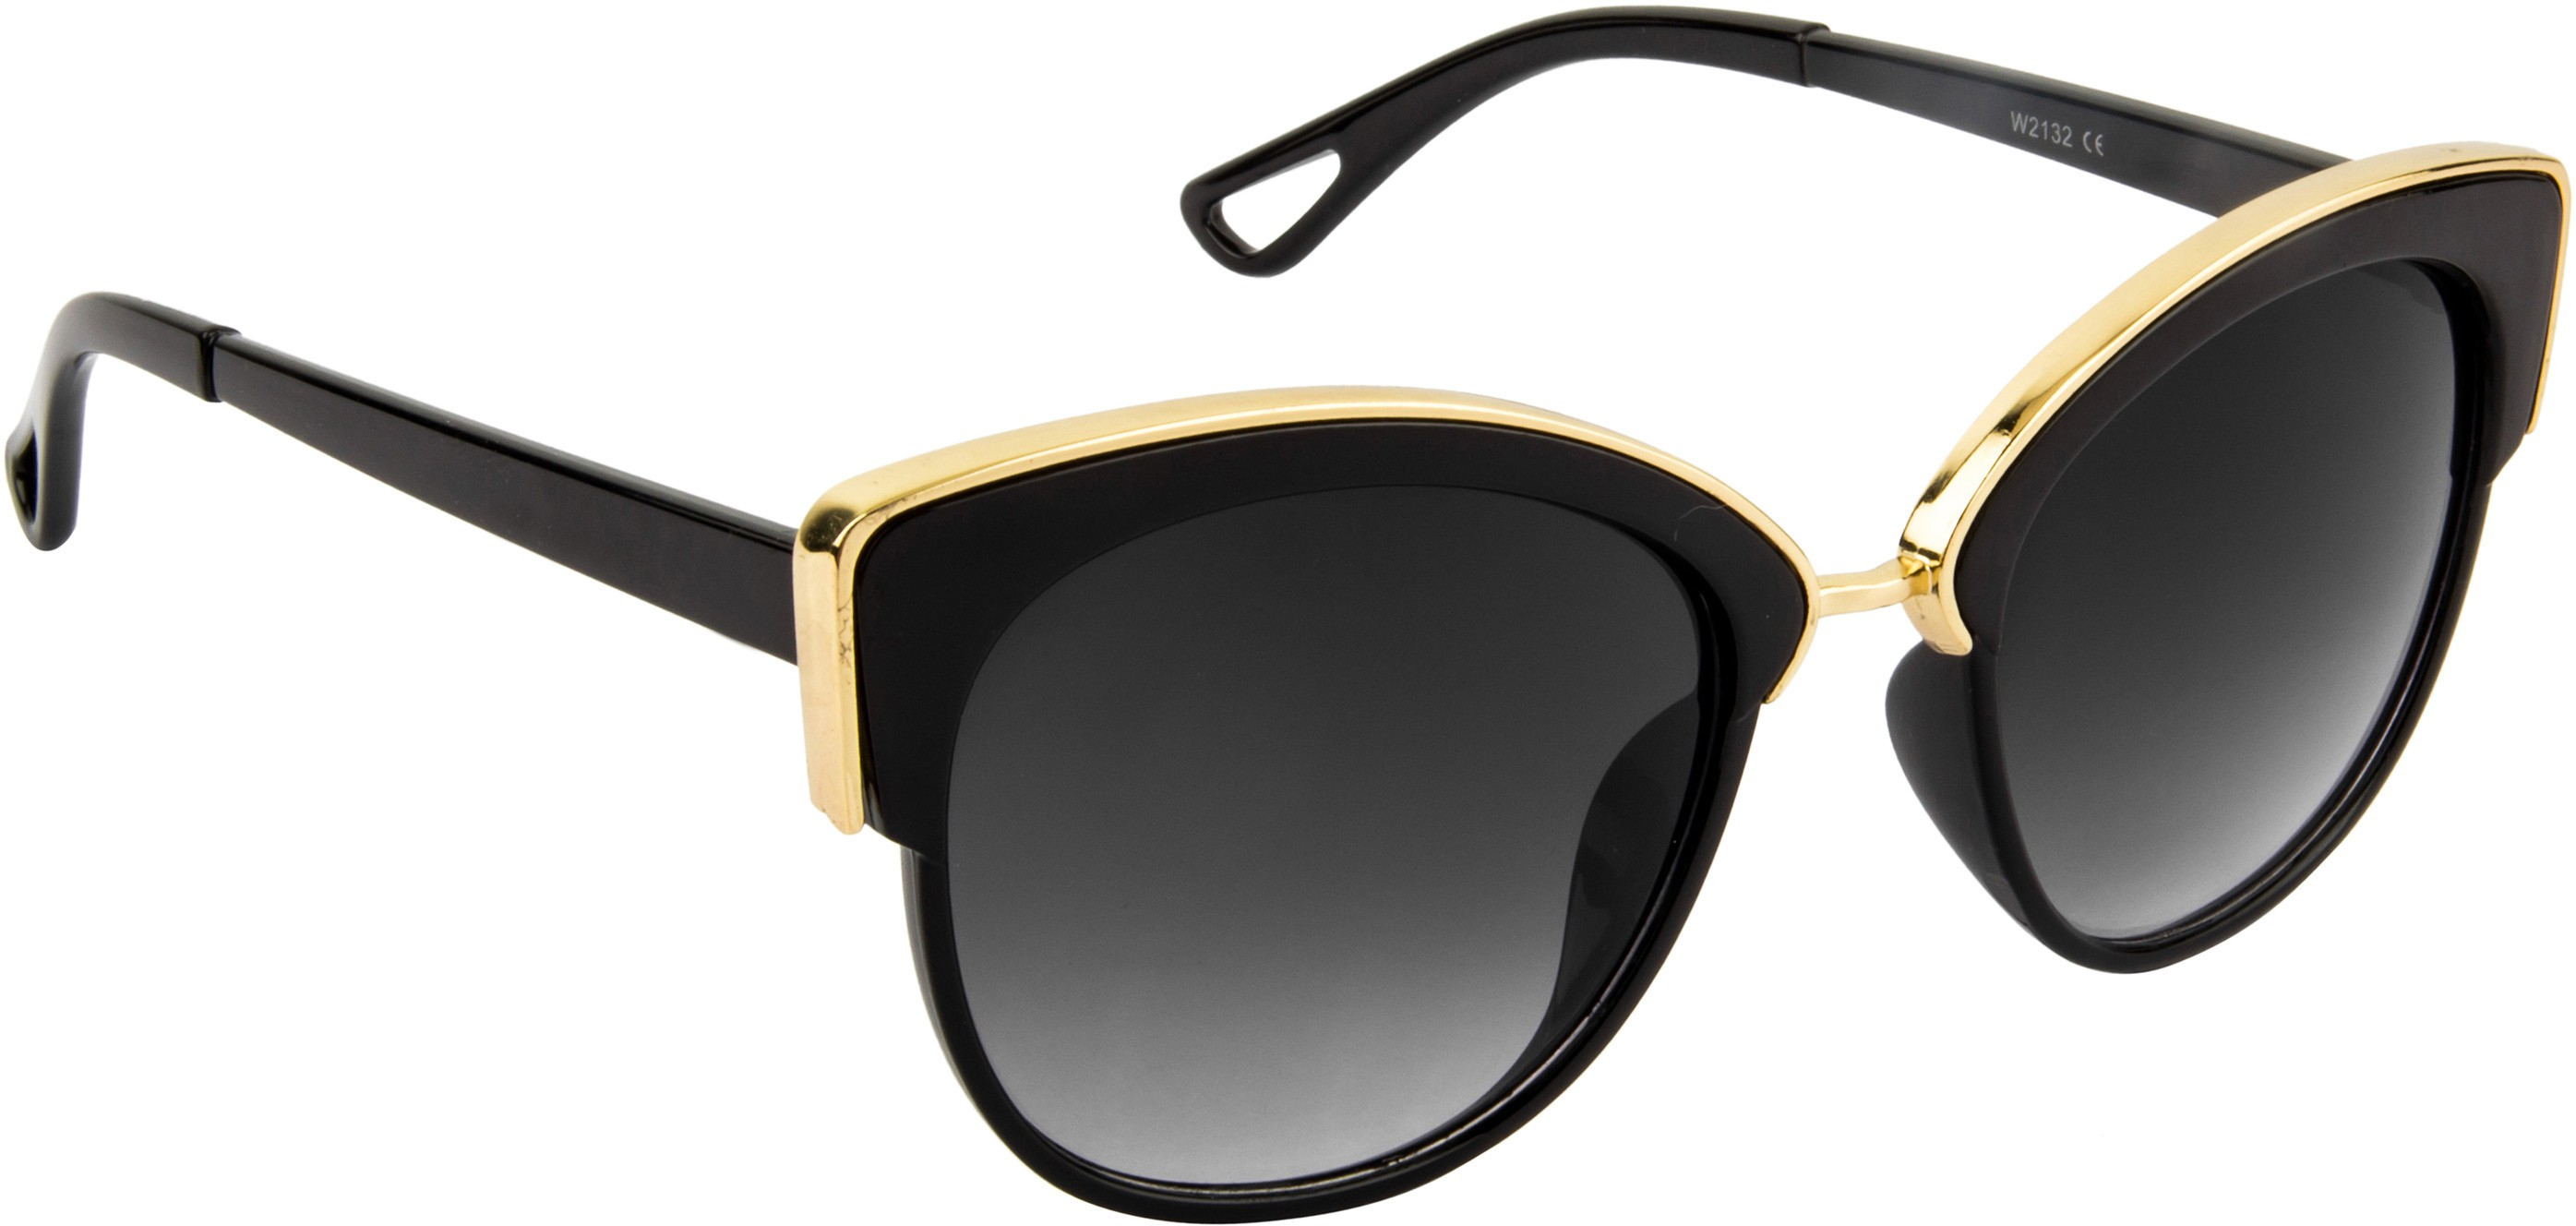 Deals - Delhi - Amaze, Abster... <br> Womens Sunglasses<br> Category - sunglasses<br> Business - Flipkart.com